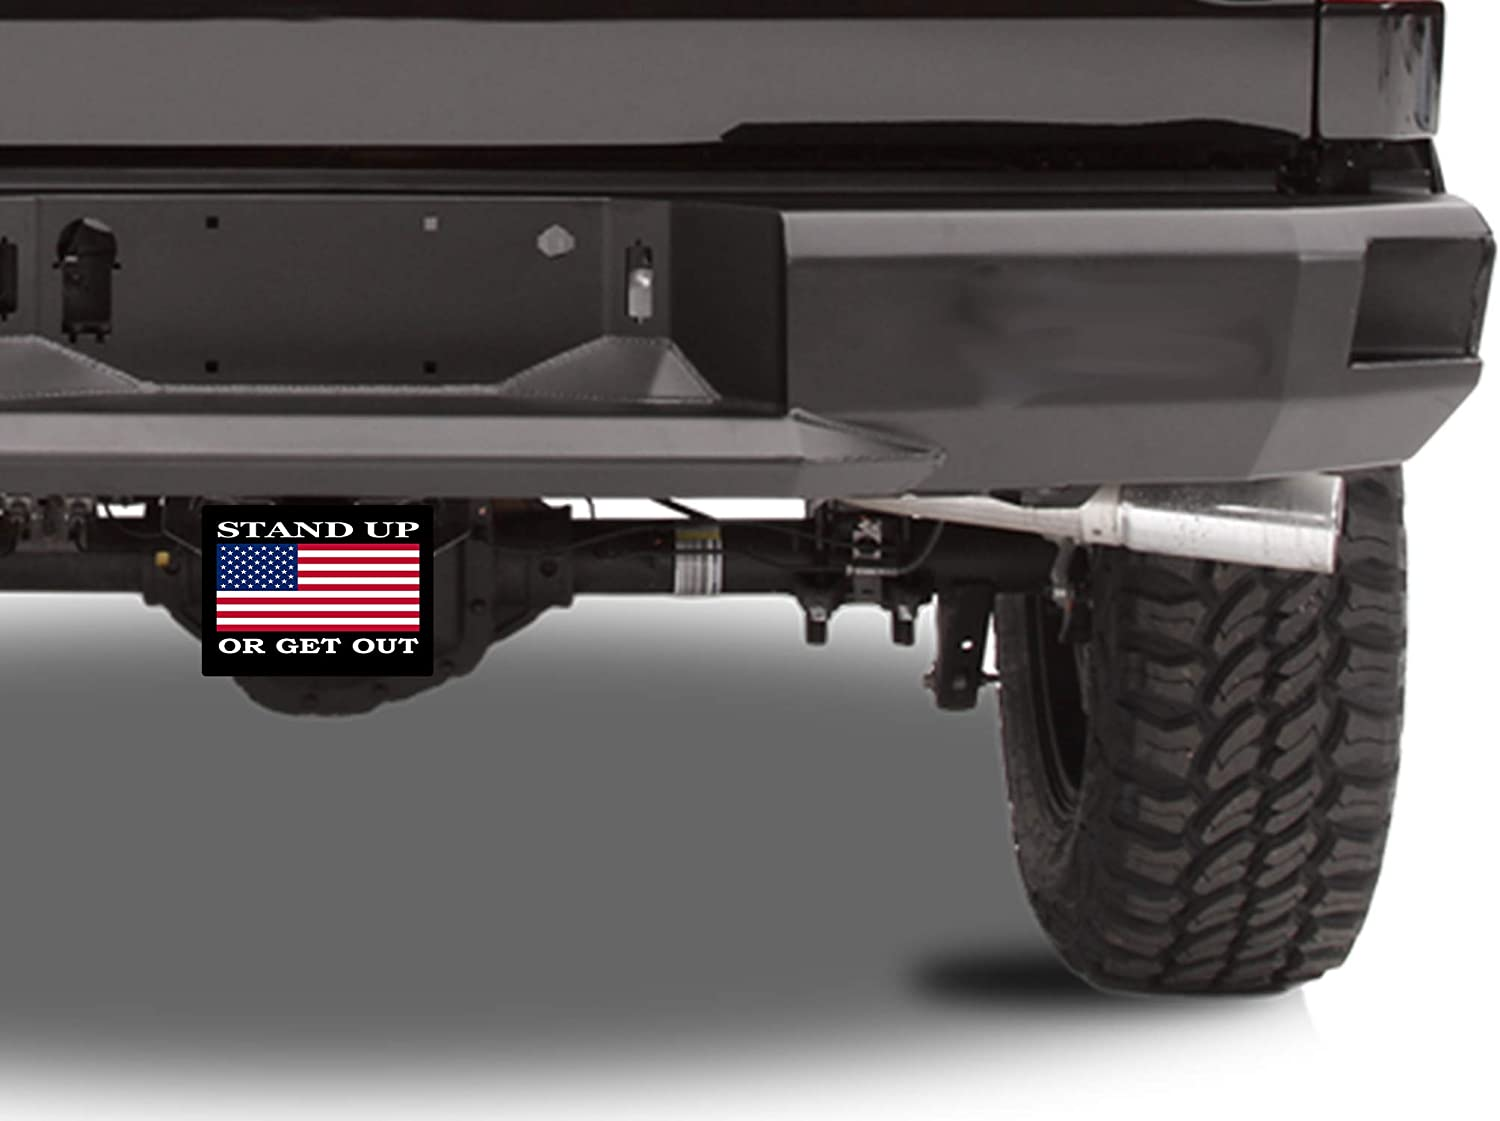 Rogue River Tactical USA American Flag Trailer Hitch Cover Plug US Patriotic Stand Up Or Get Out